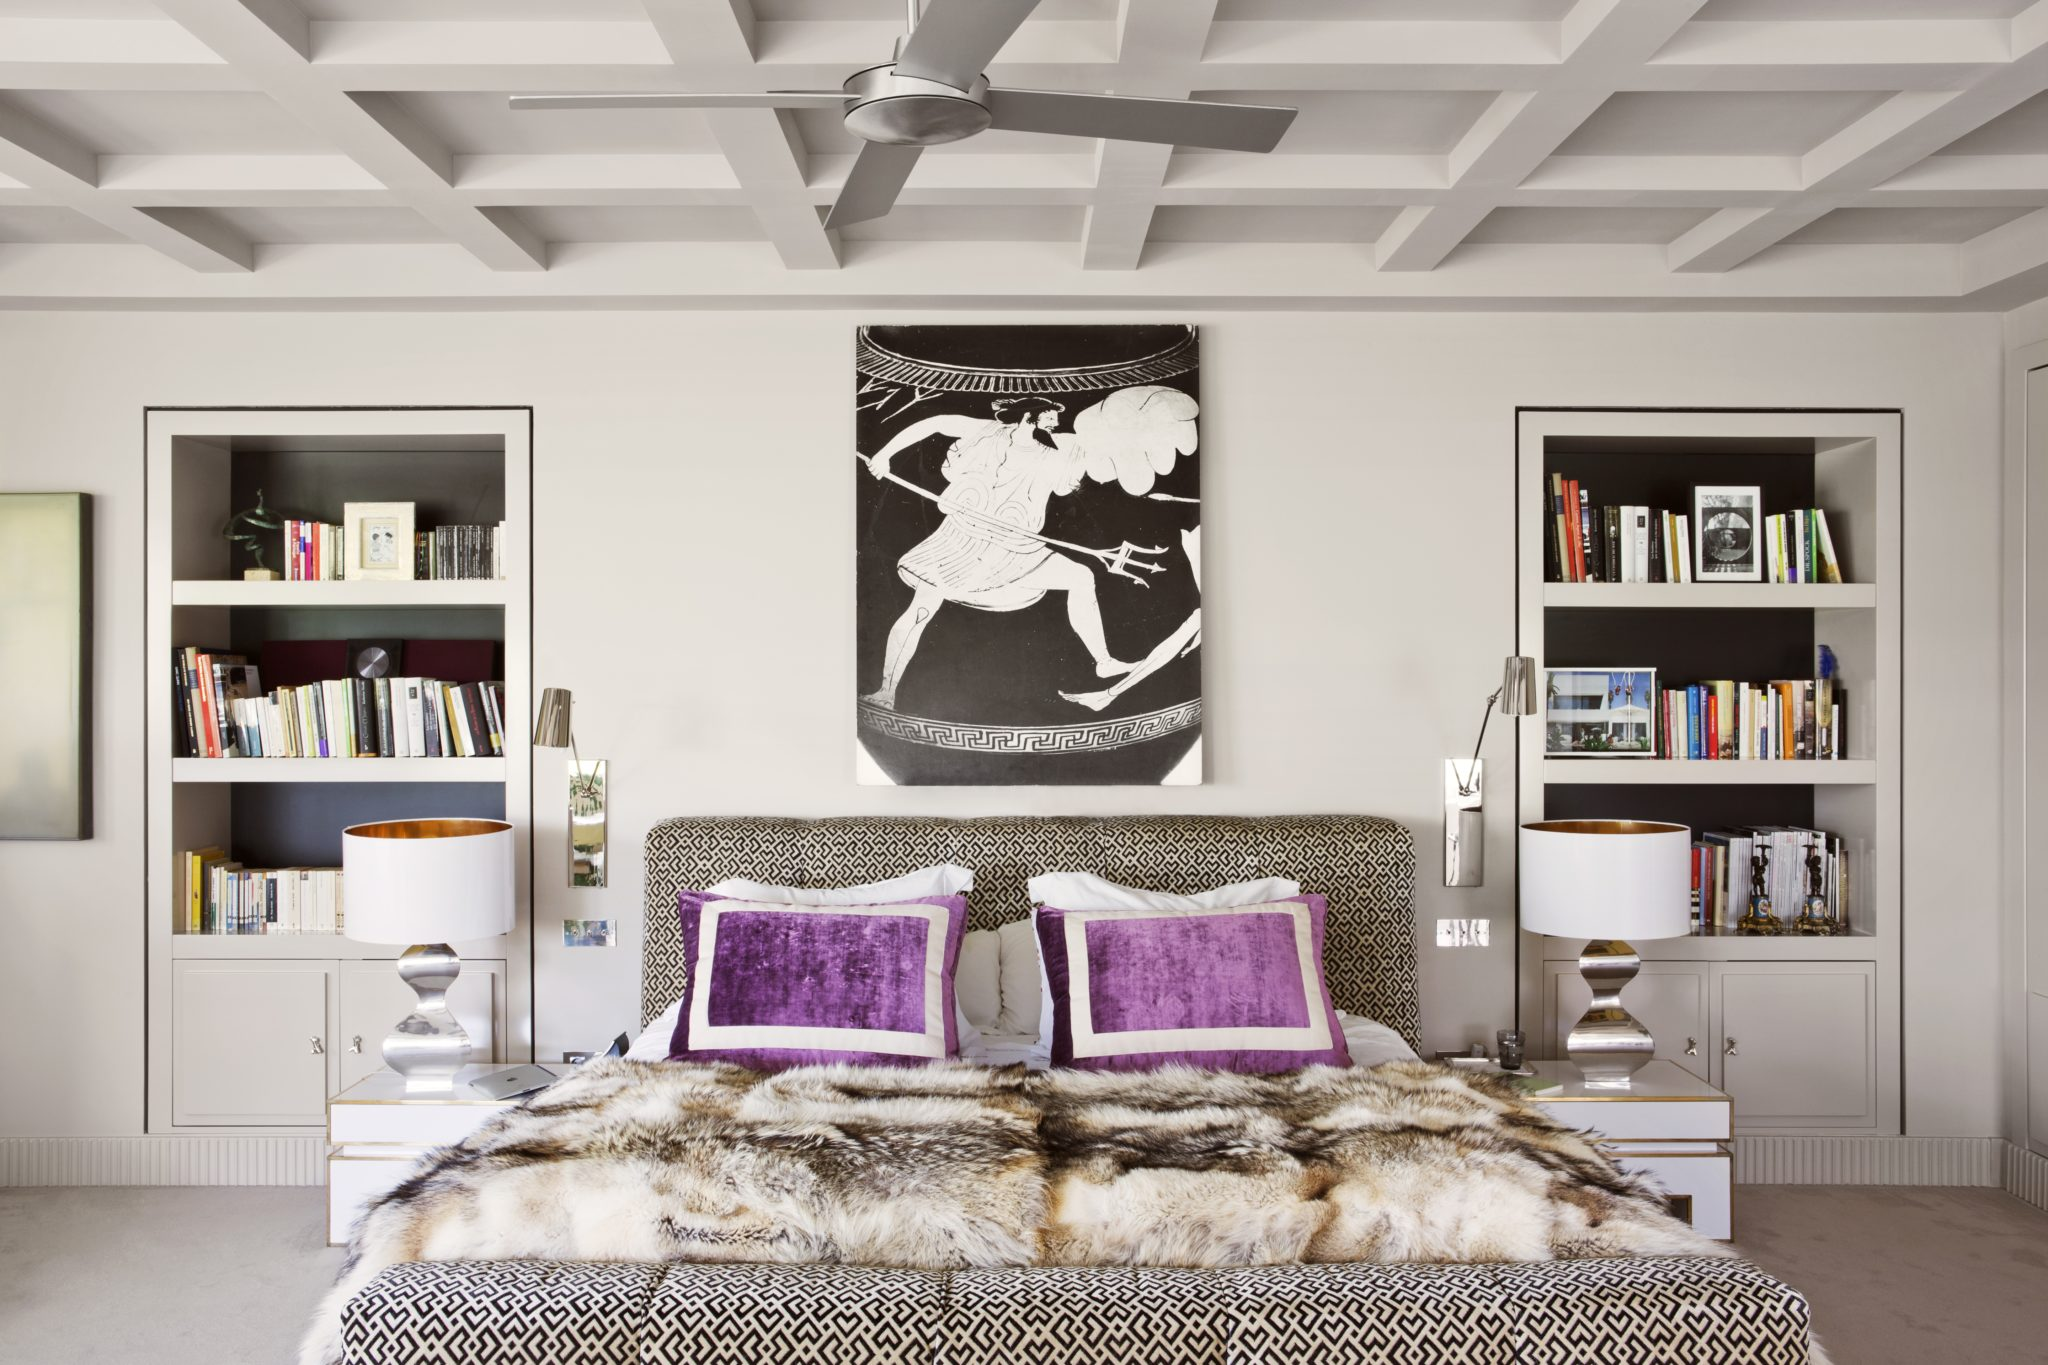 Contemporary bedroom with built-in bookshelves by Lorenzo Castillo